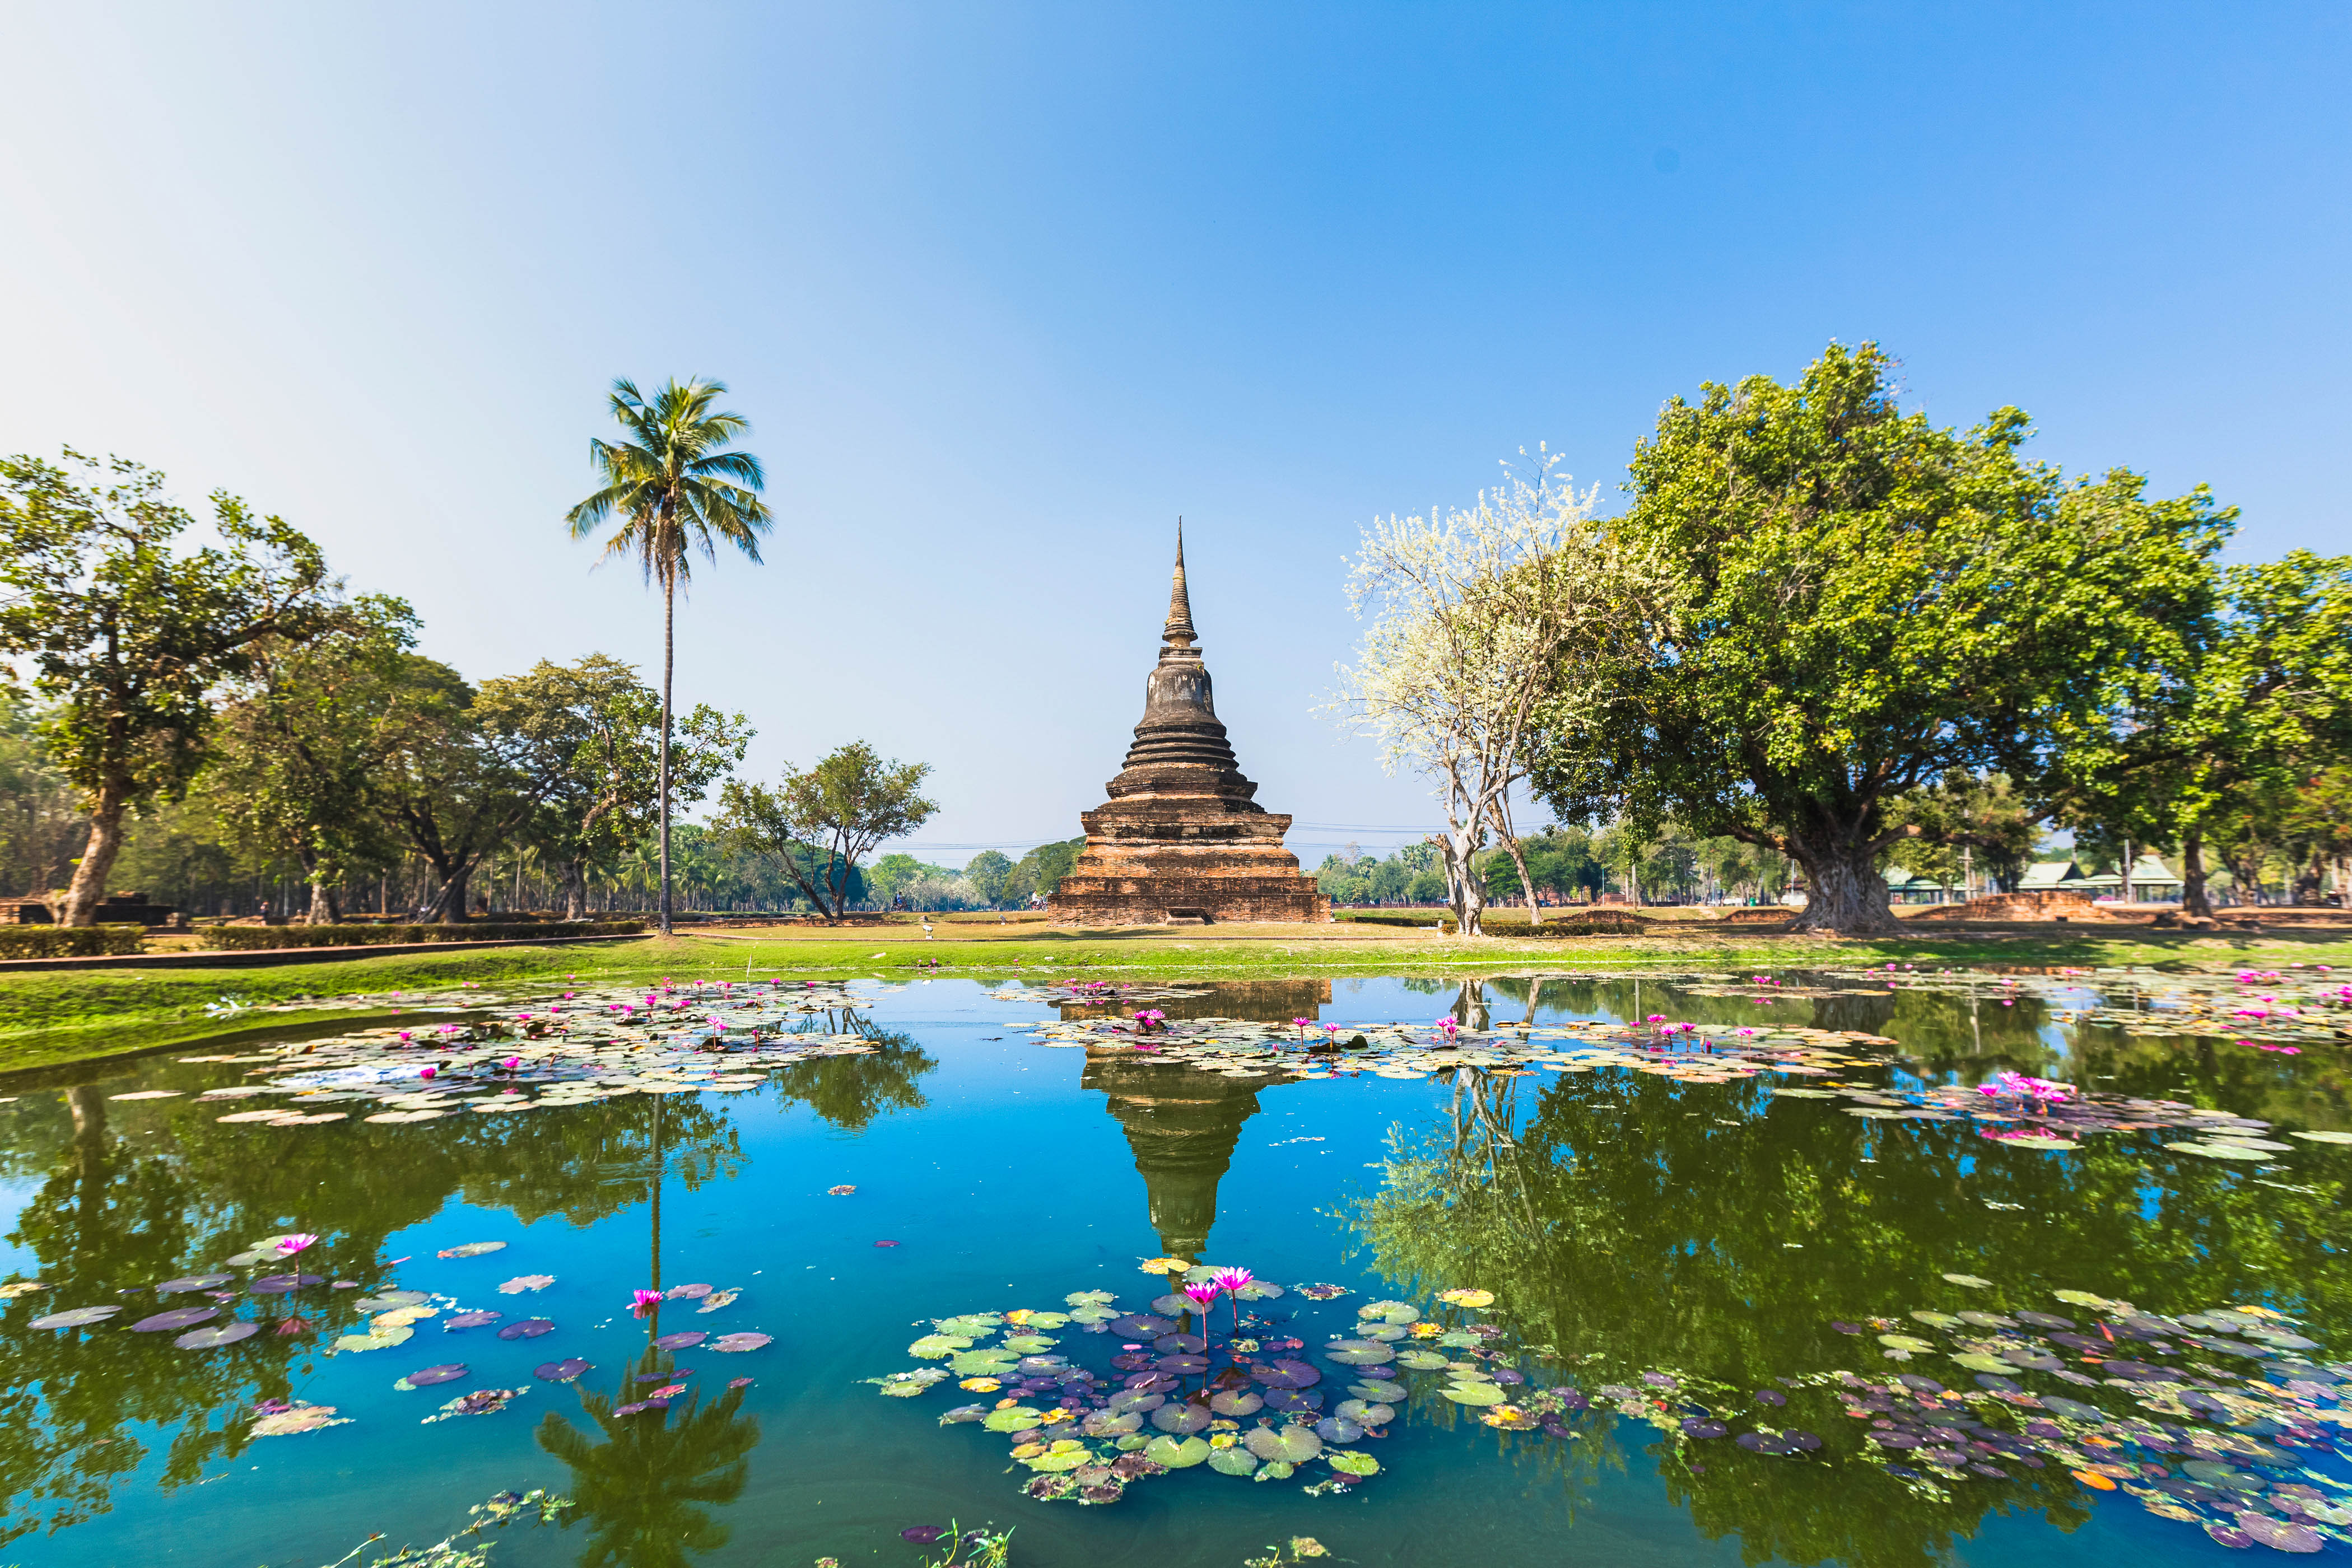 Wat Mahathat, view of Stupa in Sukhothai temple